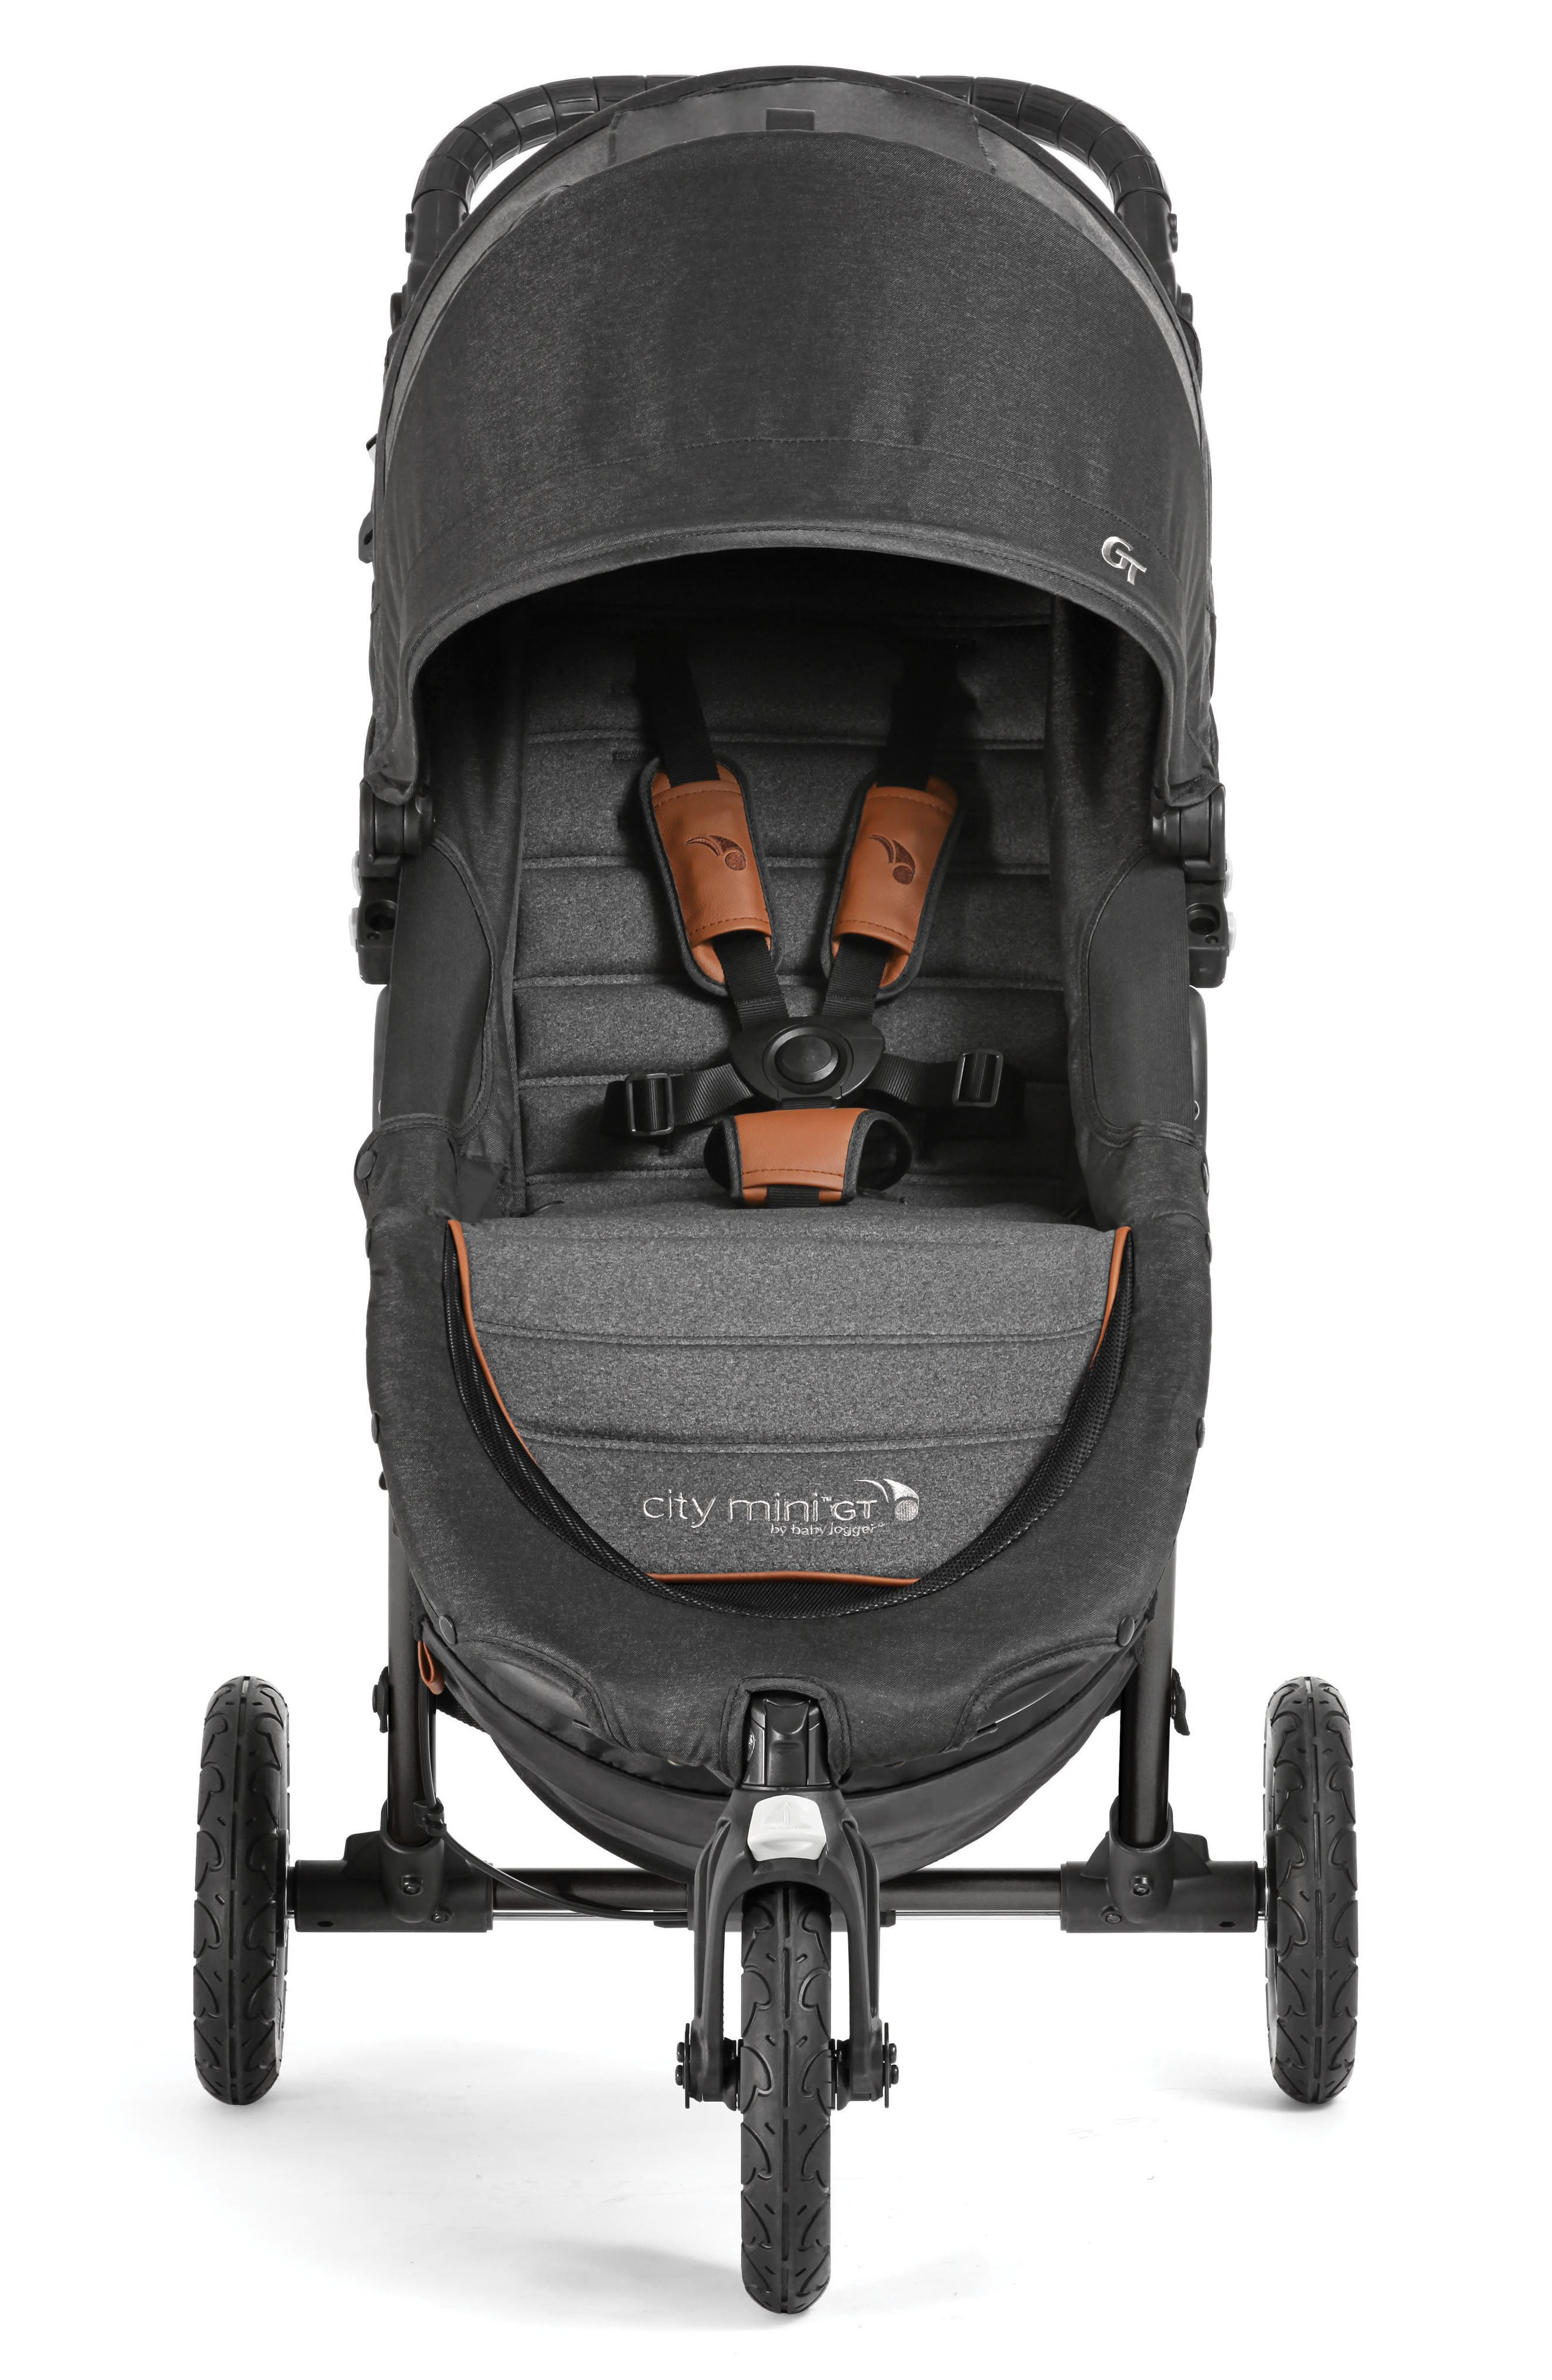 City Mini<sup>®</sup> GT 2018 Special Edition 10-Year Anniversary All-Terrain Stroller,                             Main thumbnail 1, color,                             GREY